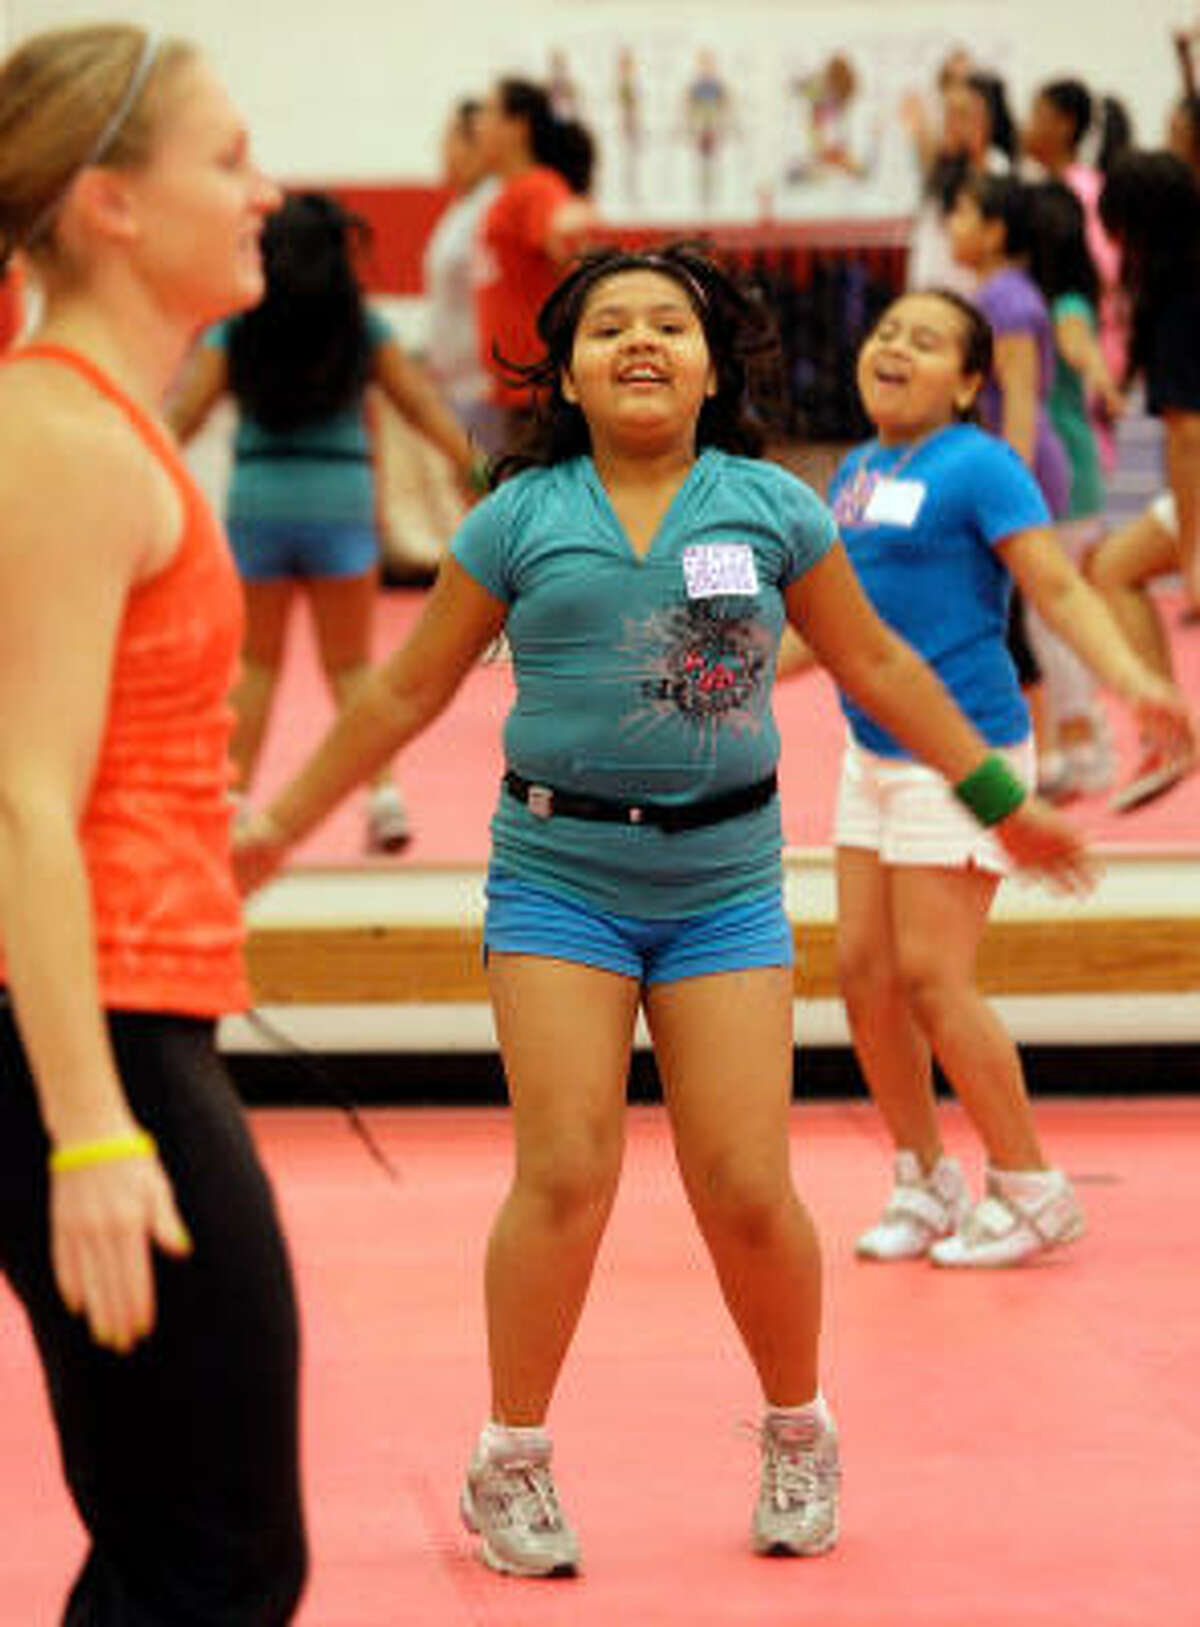 Emily Gonzalez, center, and Joanna Yanes, right, take part in a yoga class at the Behavior Opportunities Uniting Nutrition Counseling and Exercise, a summer program for girls at the University of Houston.